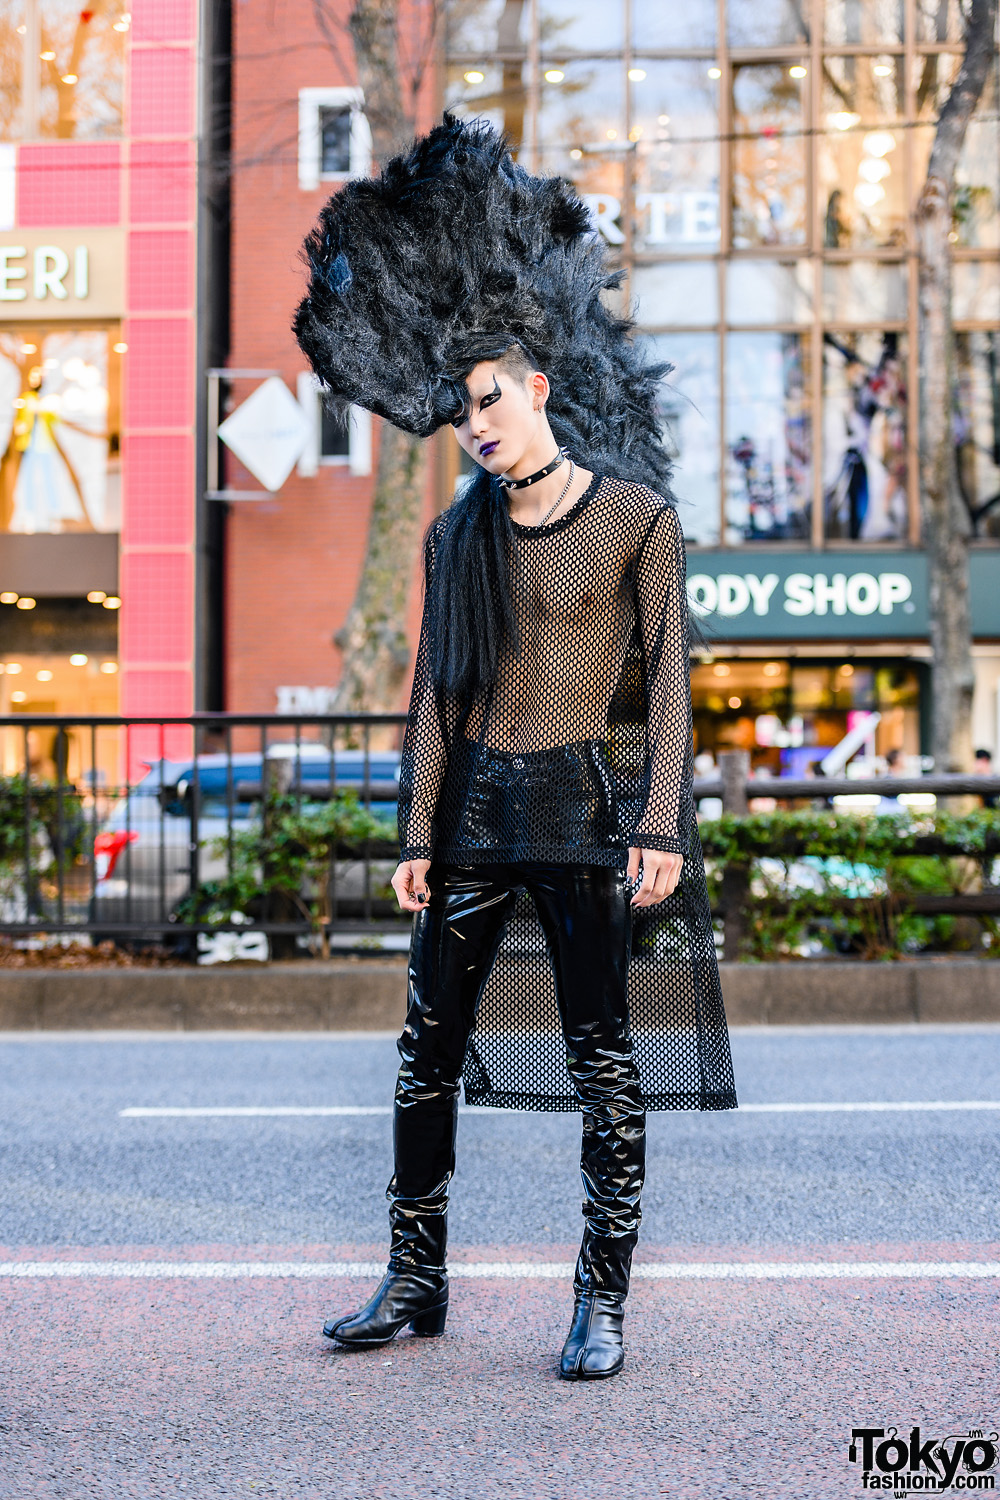 Tokyo Mohawk Hairstyle w/ Spiked Choker, Comme des Garcons Fishnet Top, Catanzaro Pleather Pants & Maison Margiela Tabi Boots